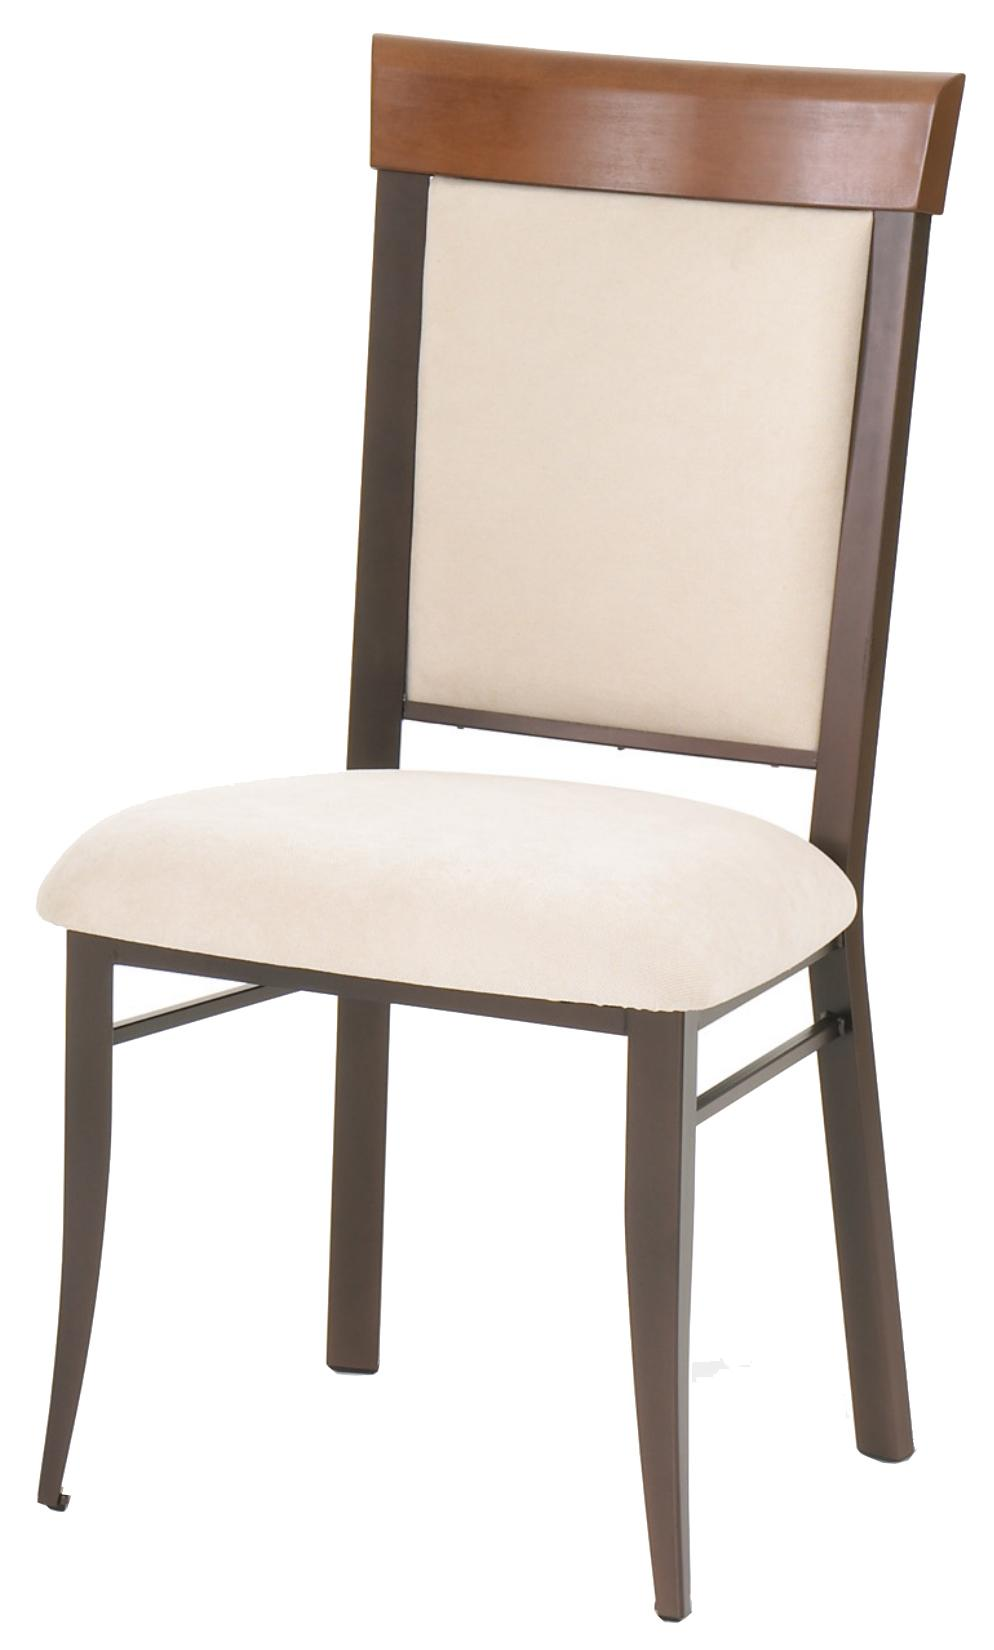 Countryside Eleanor Chair by Amisco at Dinette Depot